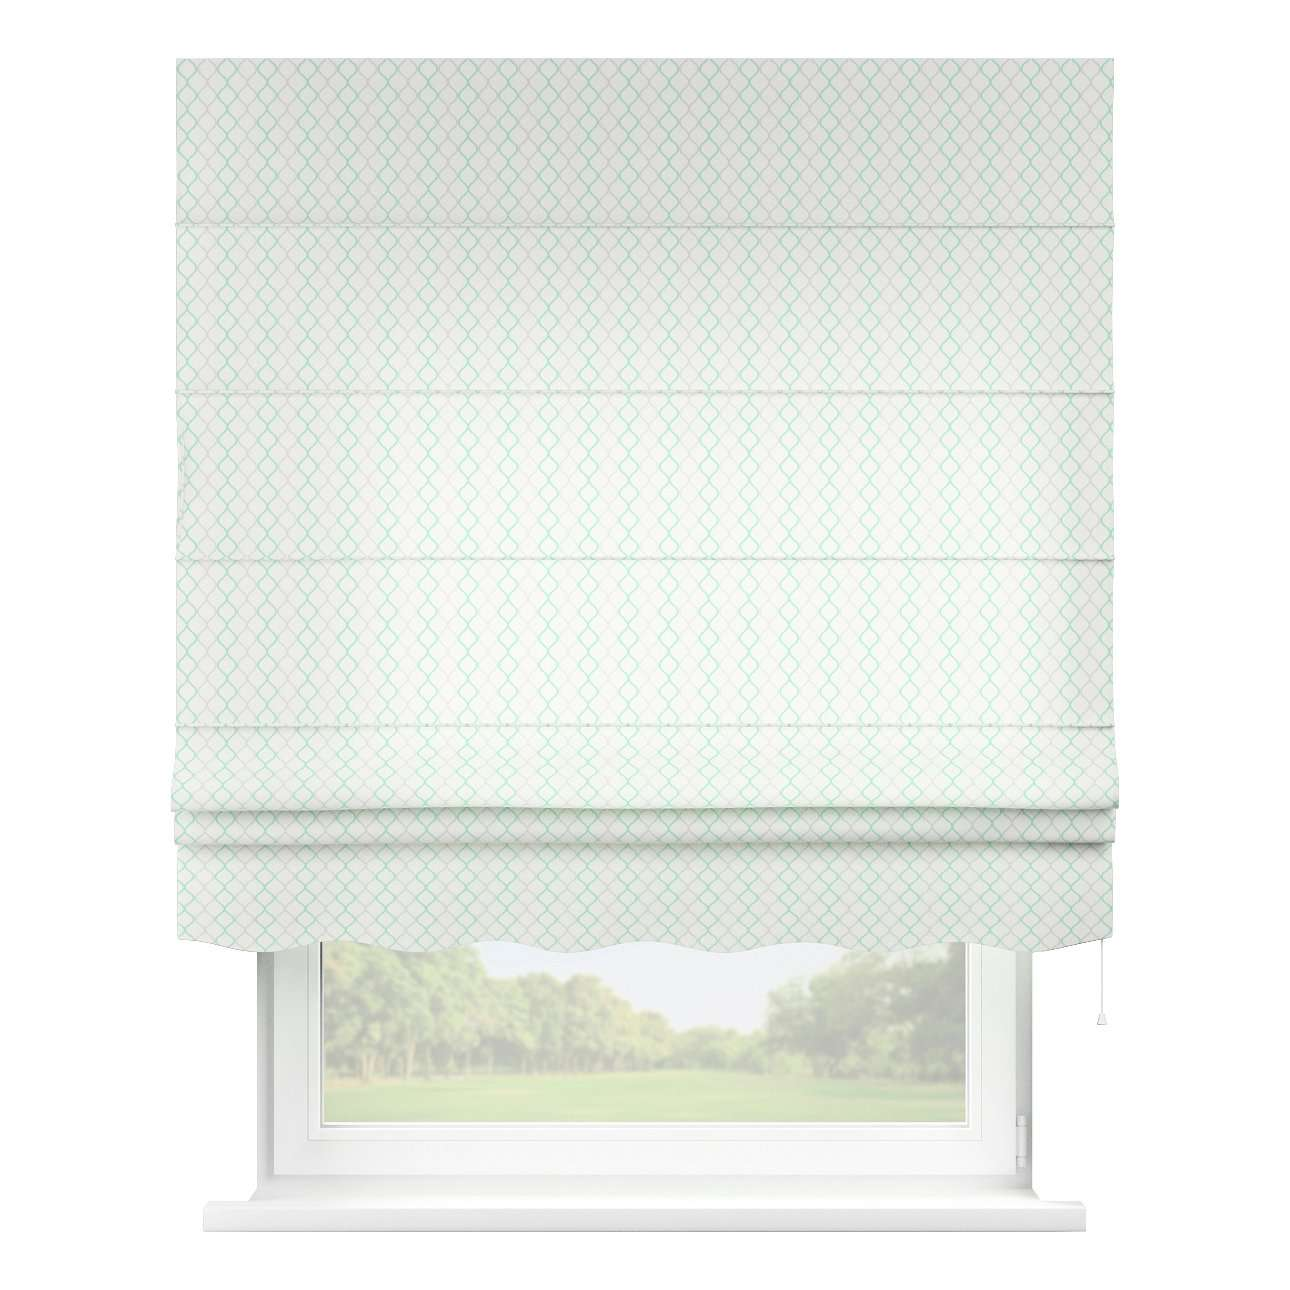 Florence roman blind  80 x 170 cm (31.5 x 67 inch) in collection Geometric, fabric: 141-47